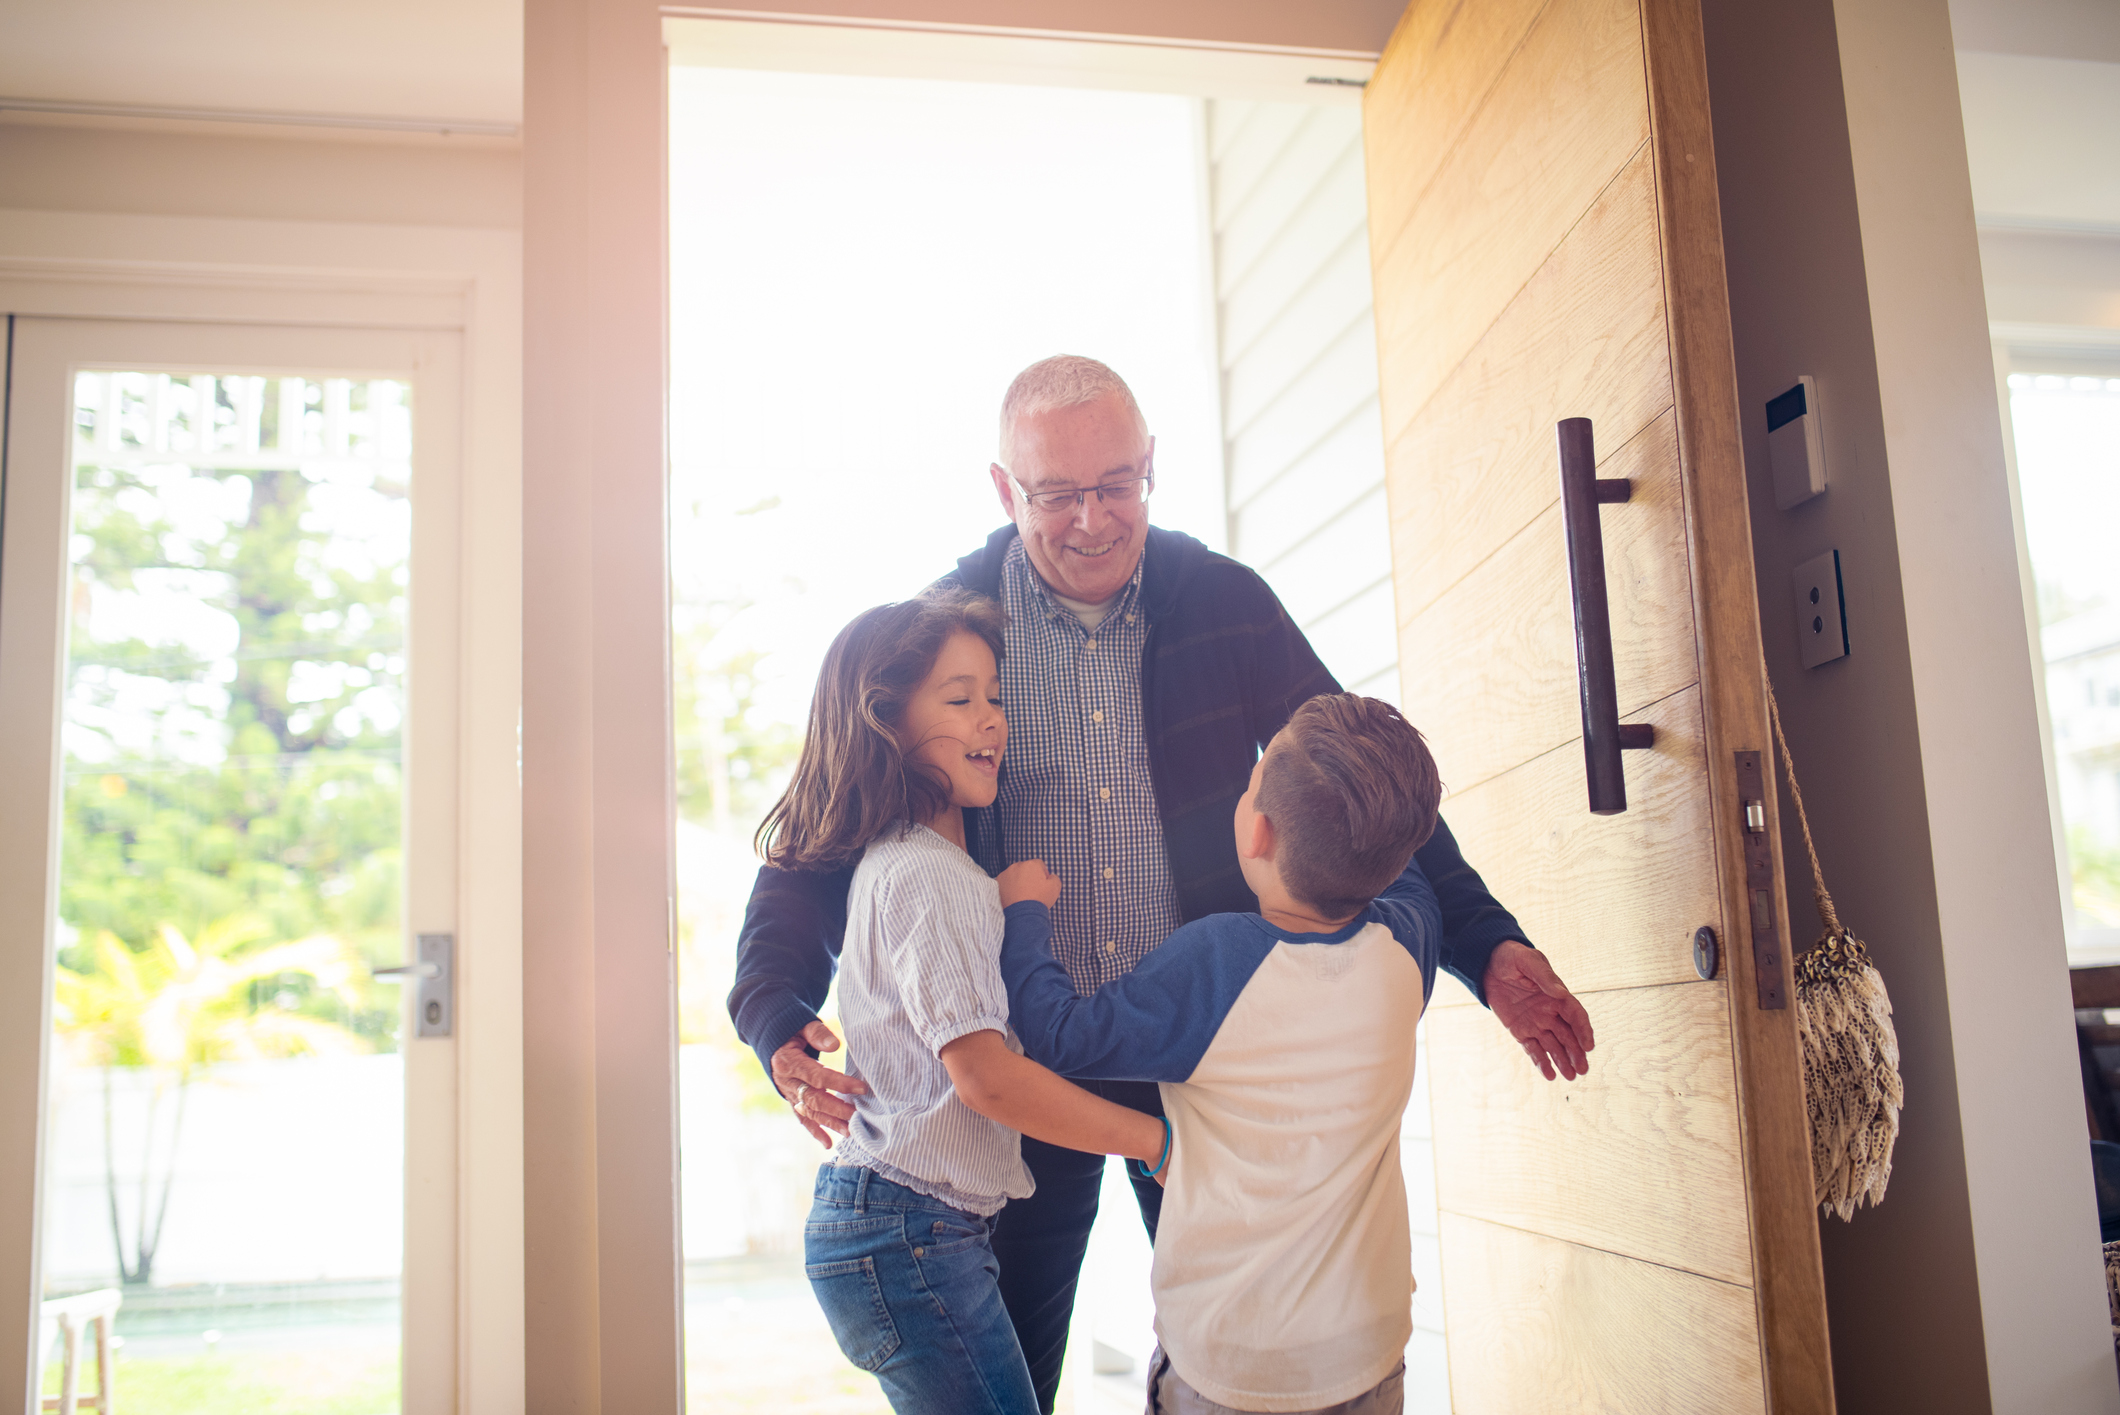 grandparent visitation Free consultation - call (844) 515-2868 - sagaria law pc is dedicated to helping individuals and families with family issues including grandparent visitation and.